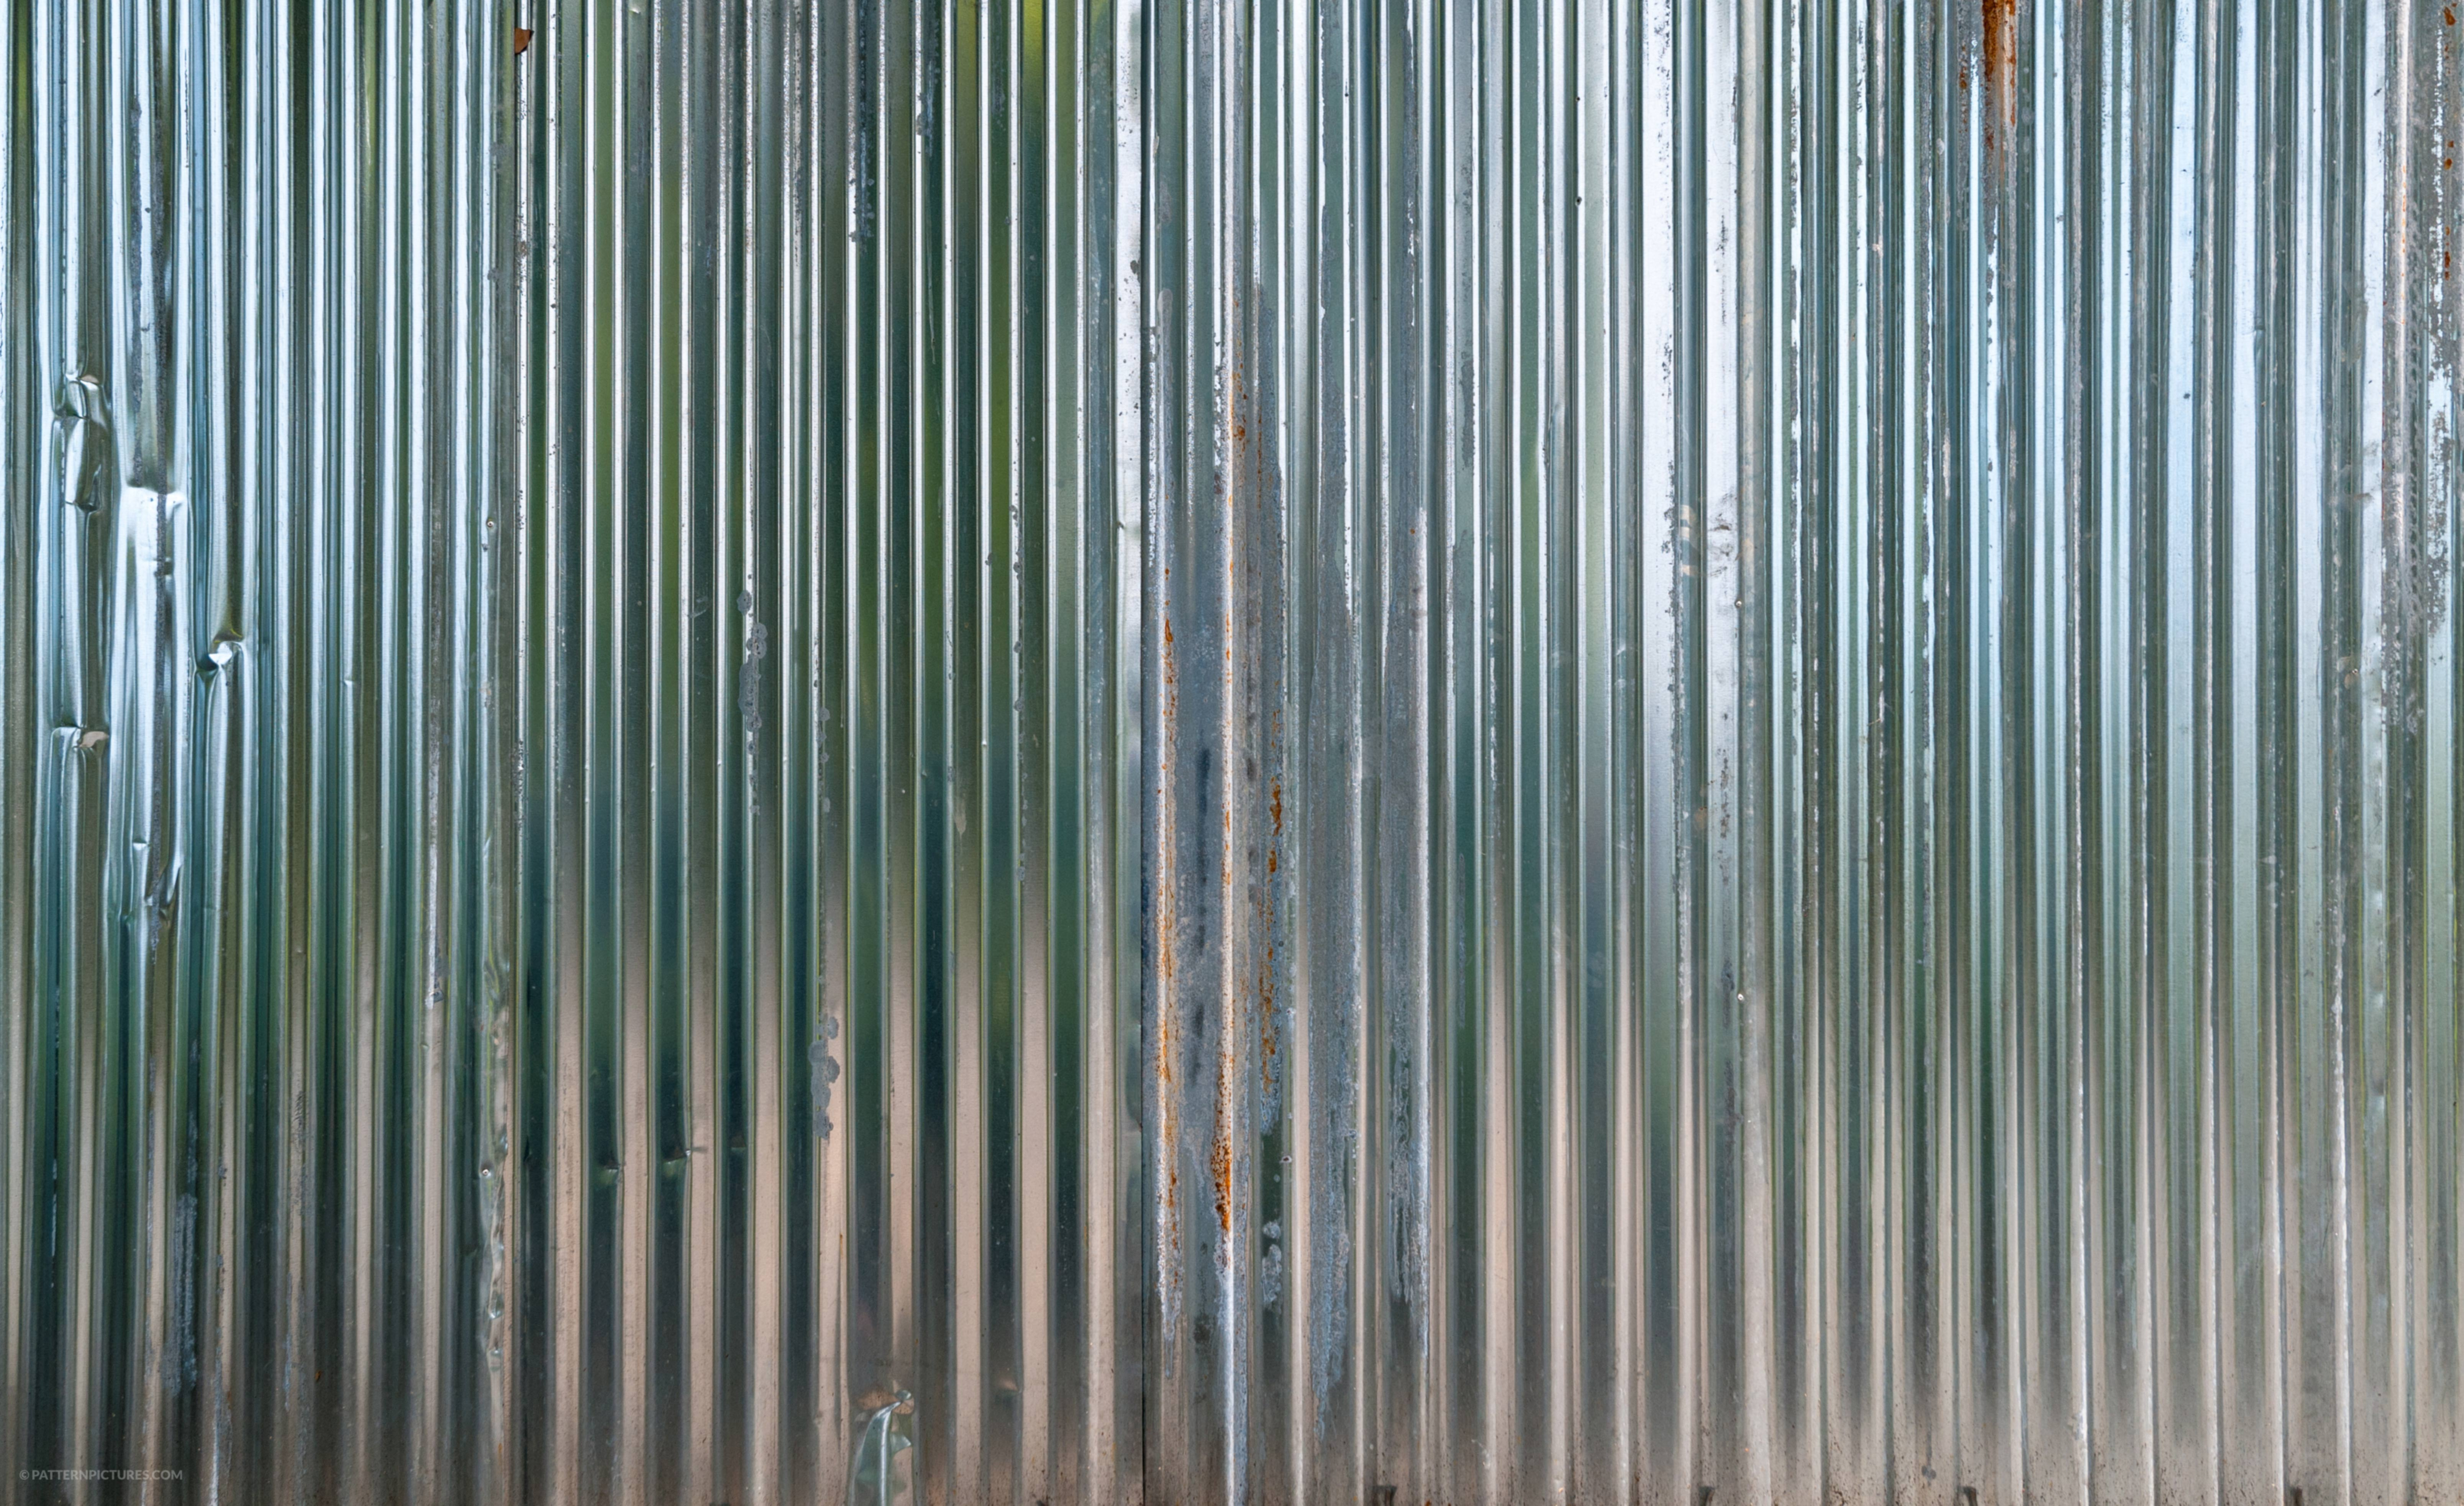 Close-Up Of A Shiny Corregated Steel Wall